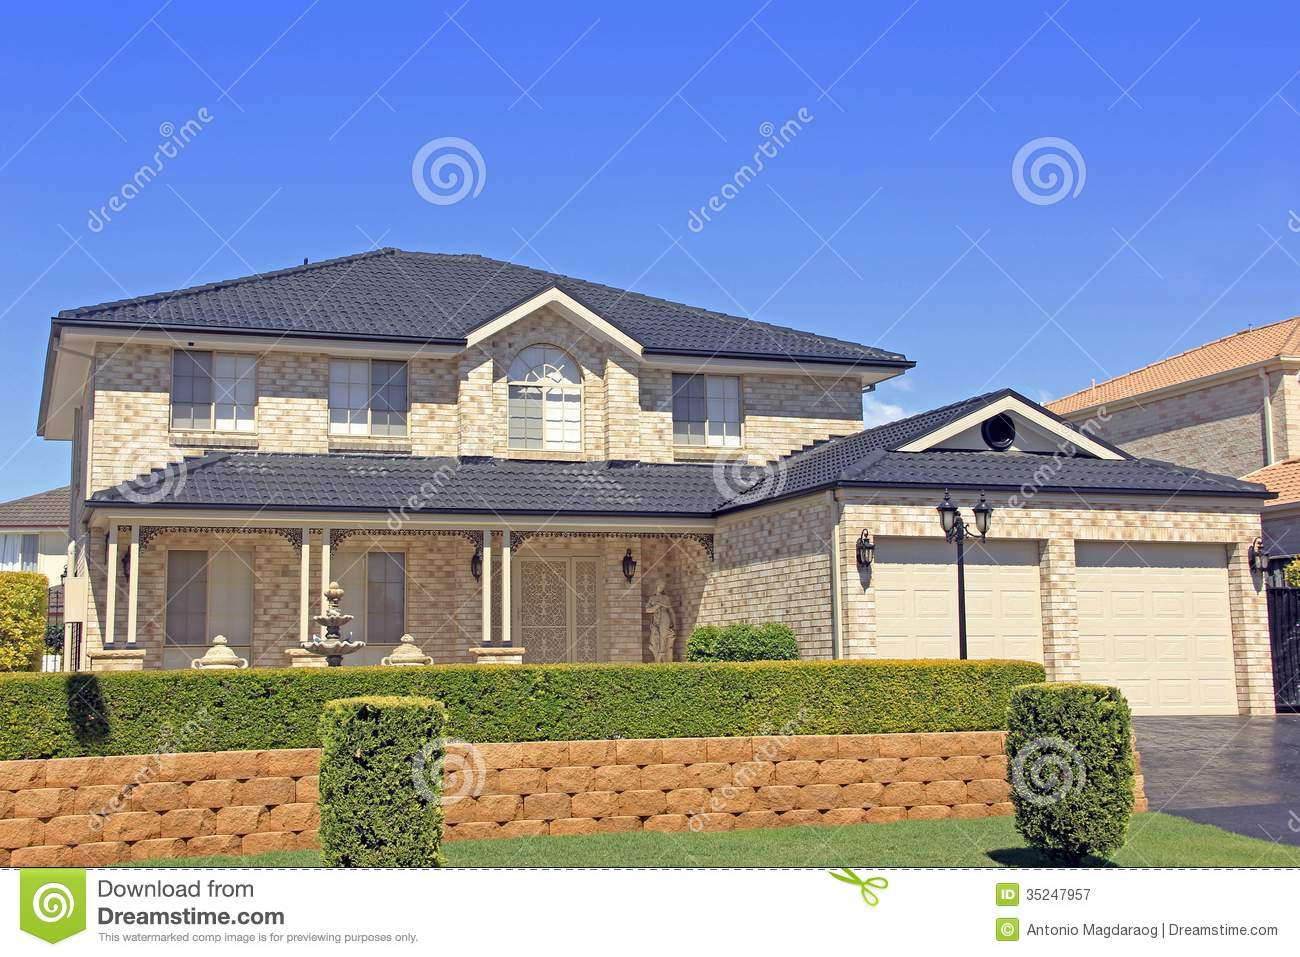 Residential house royalty free stock photography image for Beautiful residential houses